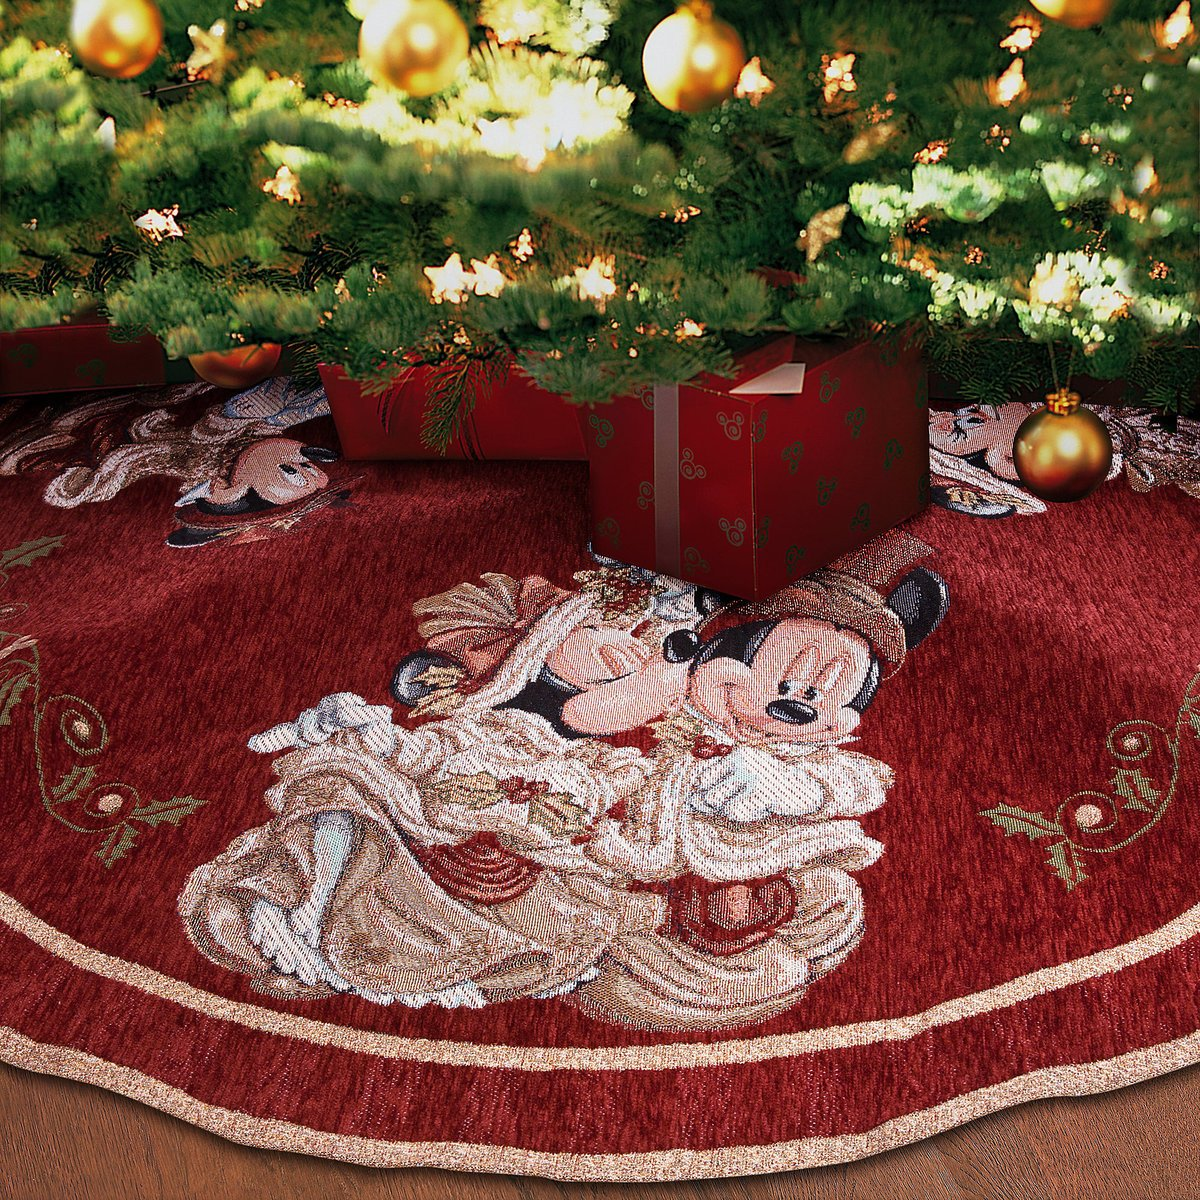 Disney Park Mickey Minnie Mouse Victorian Tapestry Christmas Holiday Tree Skirt by Disney Parks (Image #2)